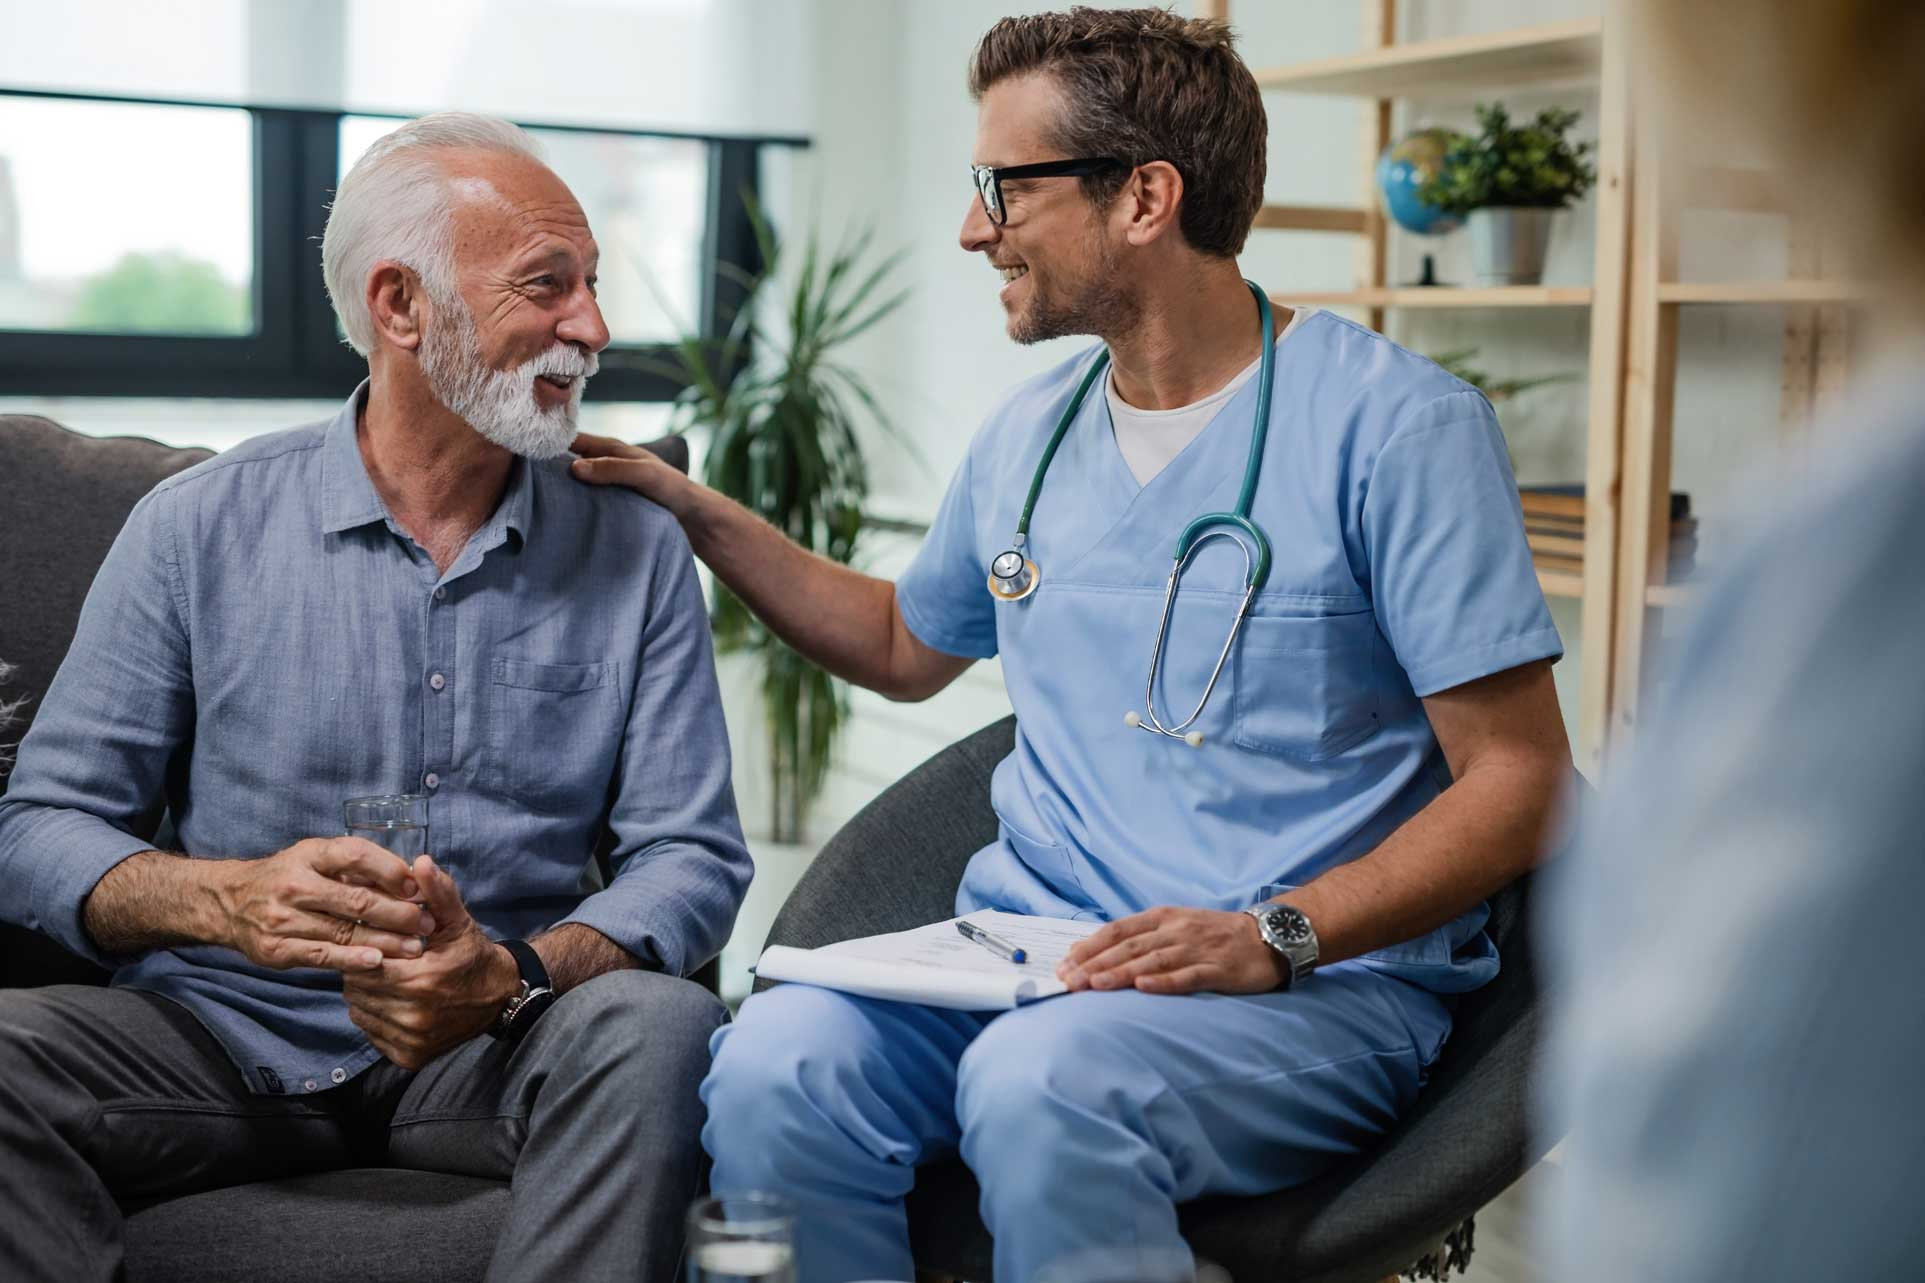 Male patient talking with male doctor.